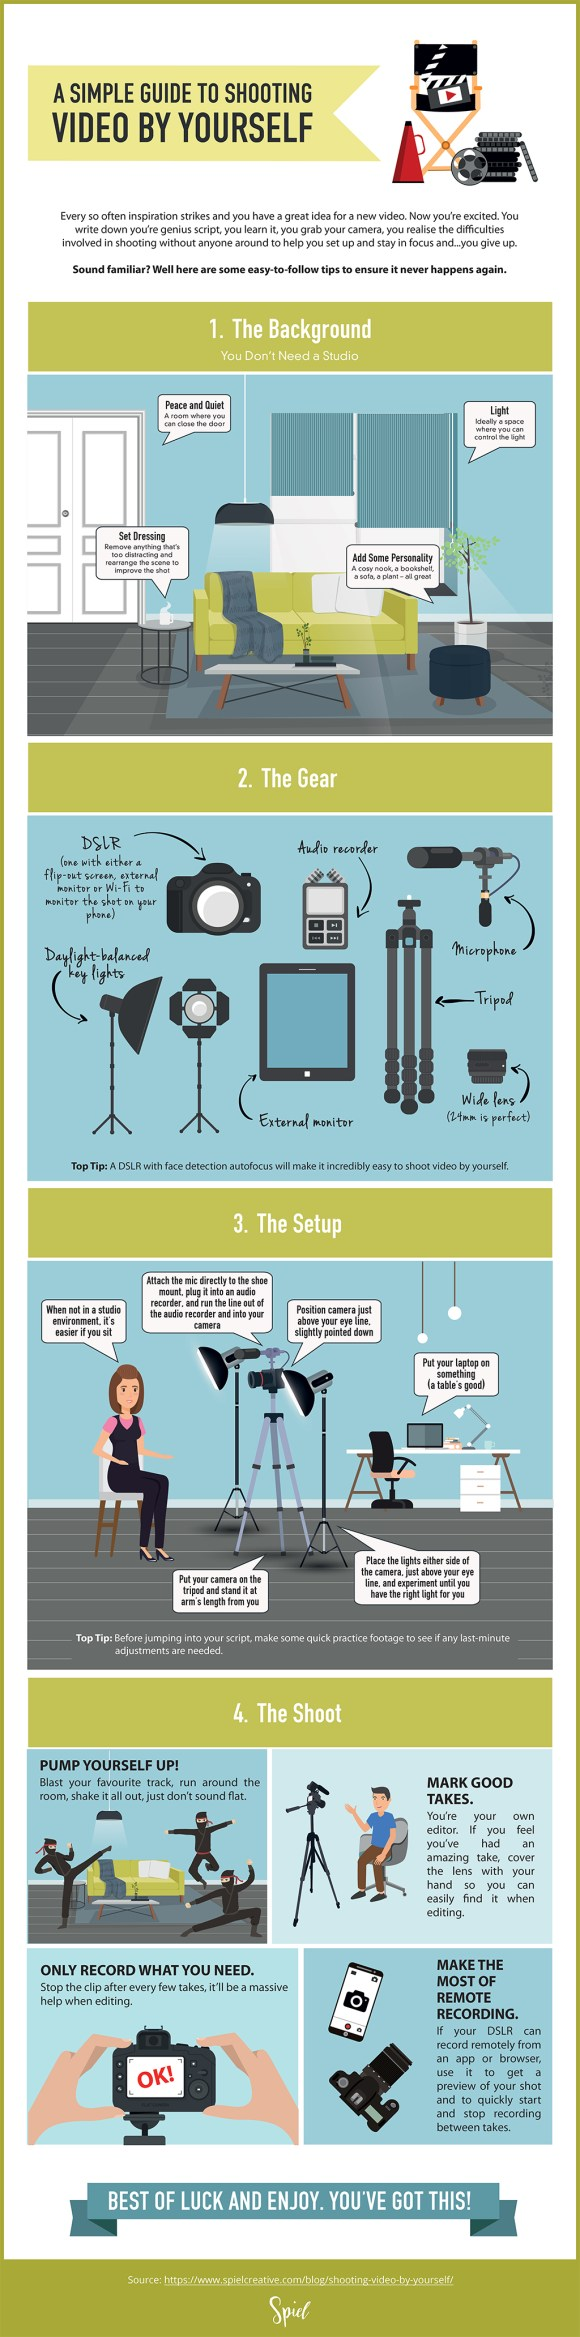 A Simple Guide to Shooting Video by Yourself (Infographic)